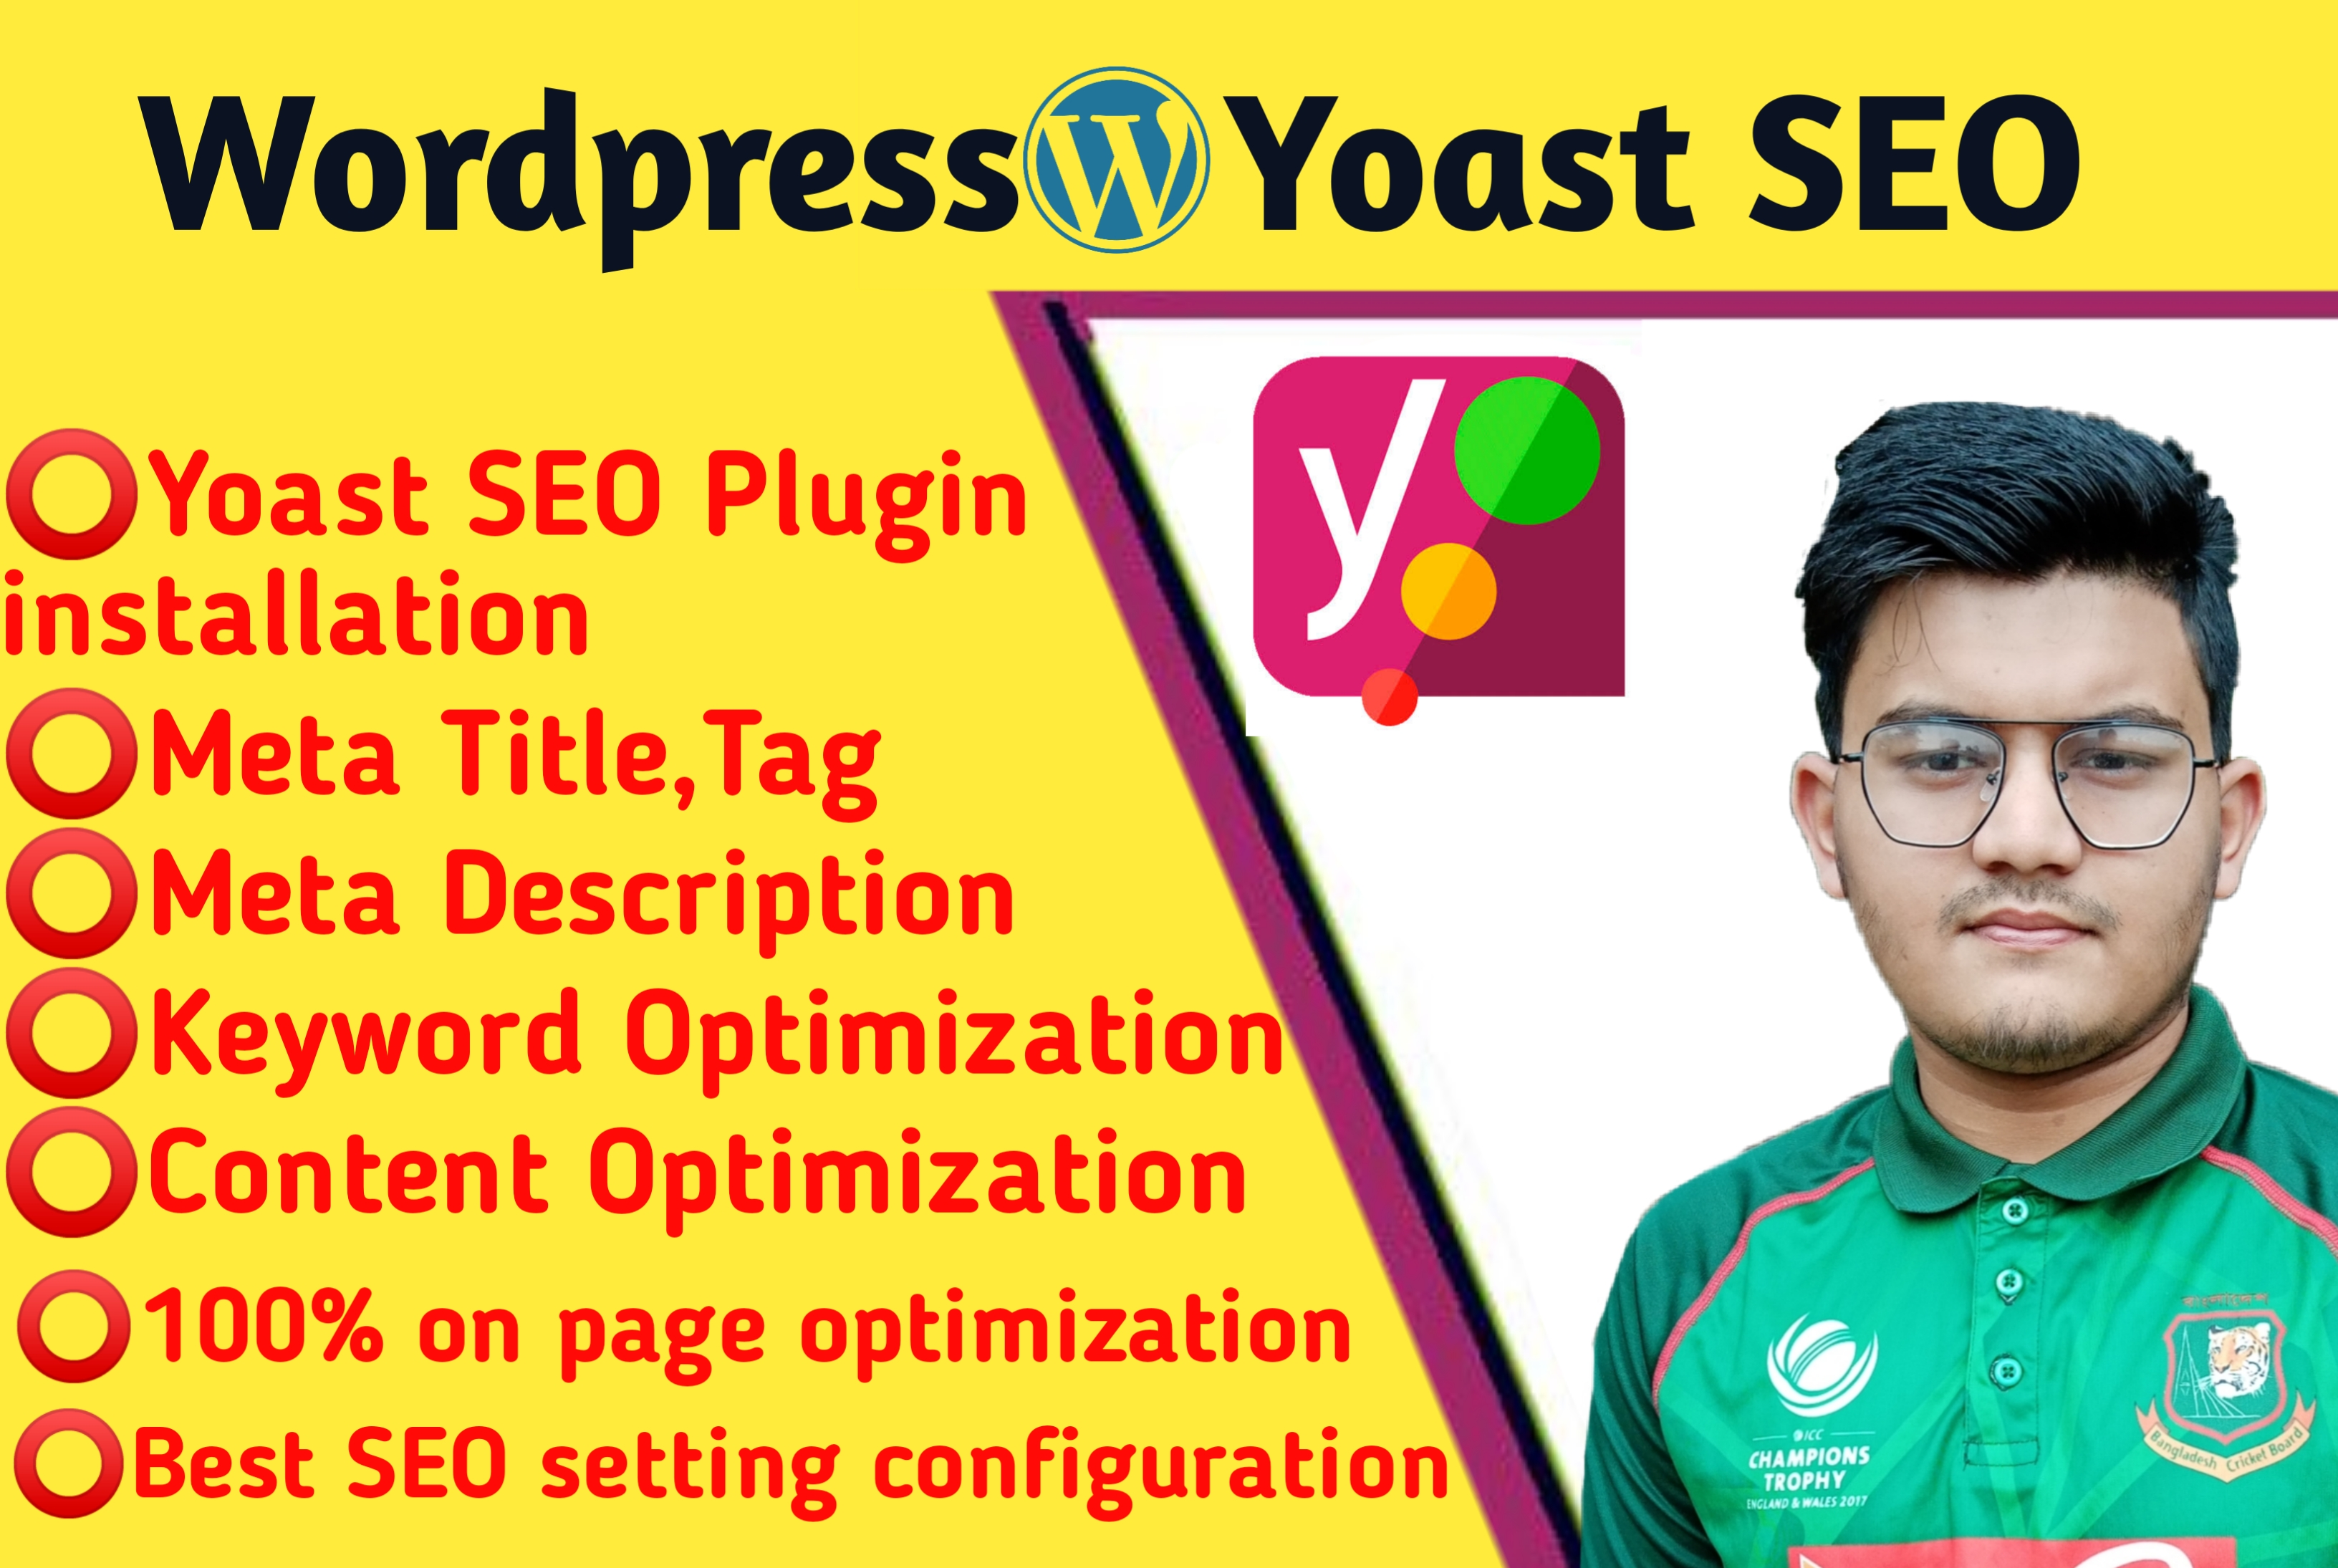 I wil Install & Setup Yoast WordPress SEO plugin And Do Onpage SEO Optimization